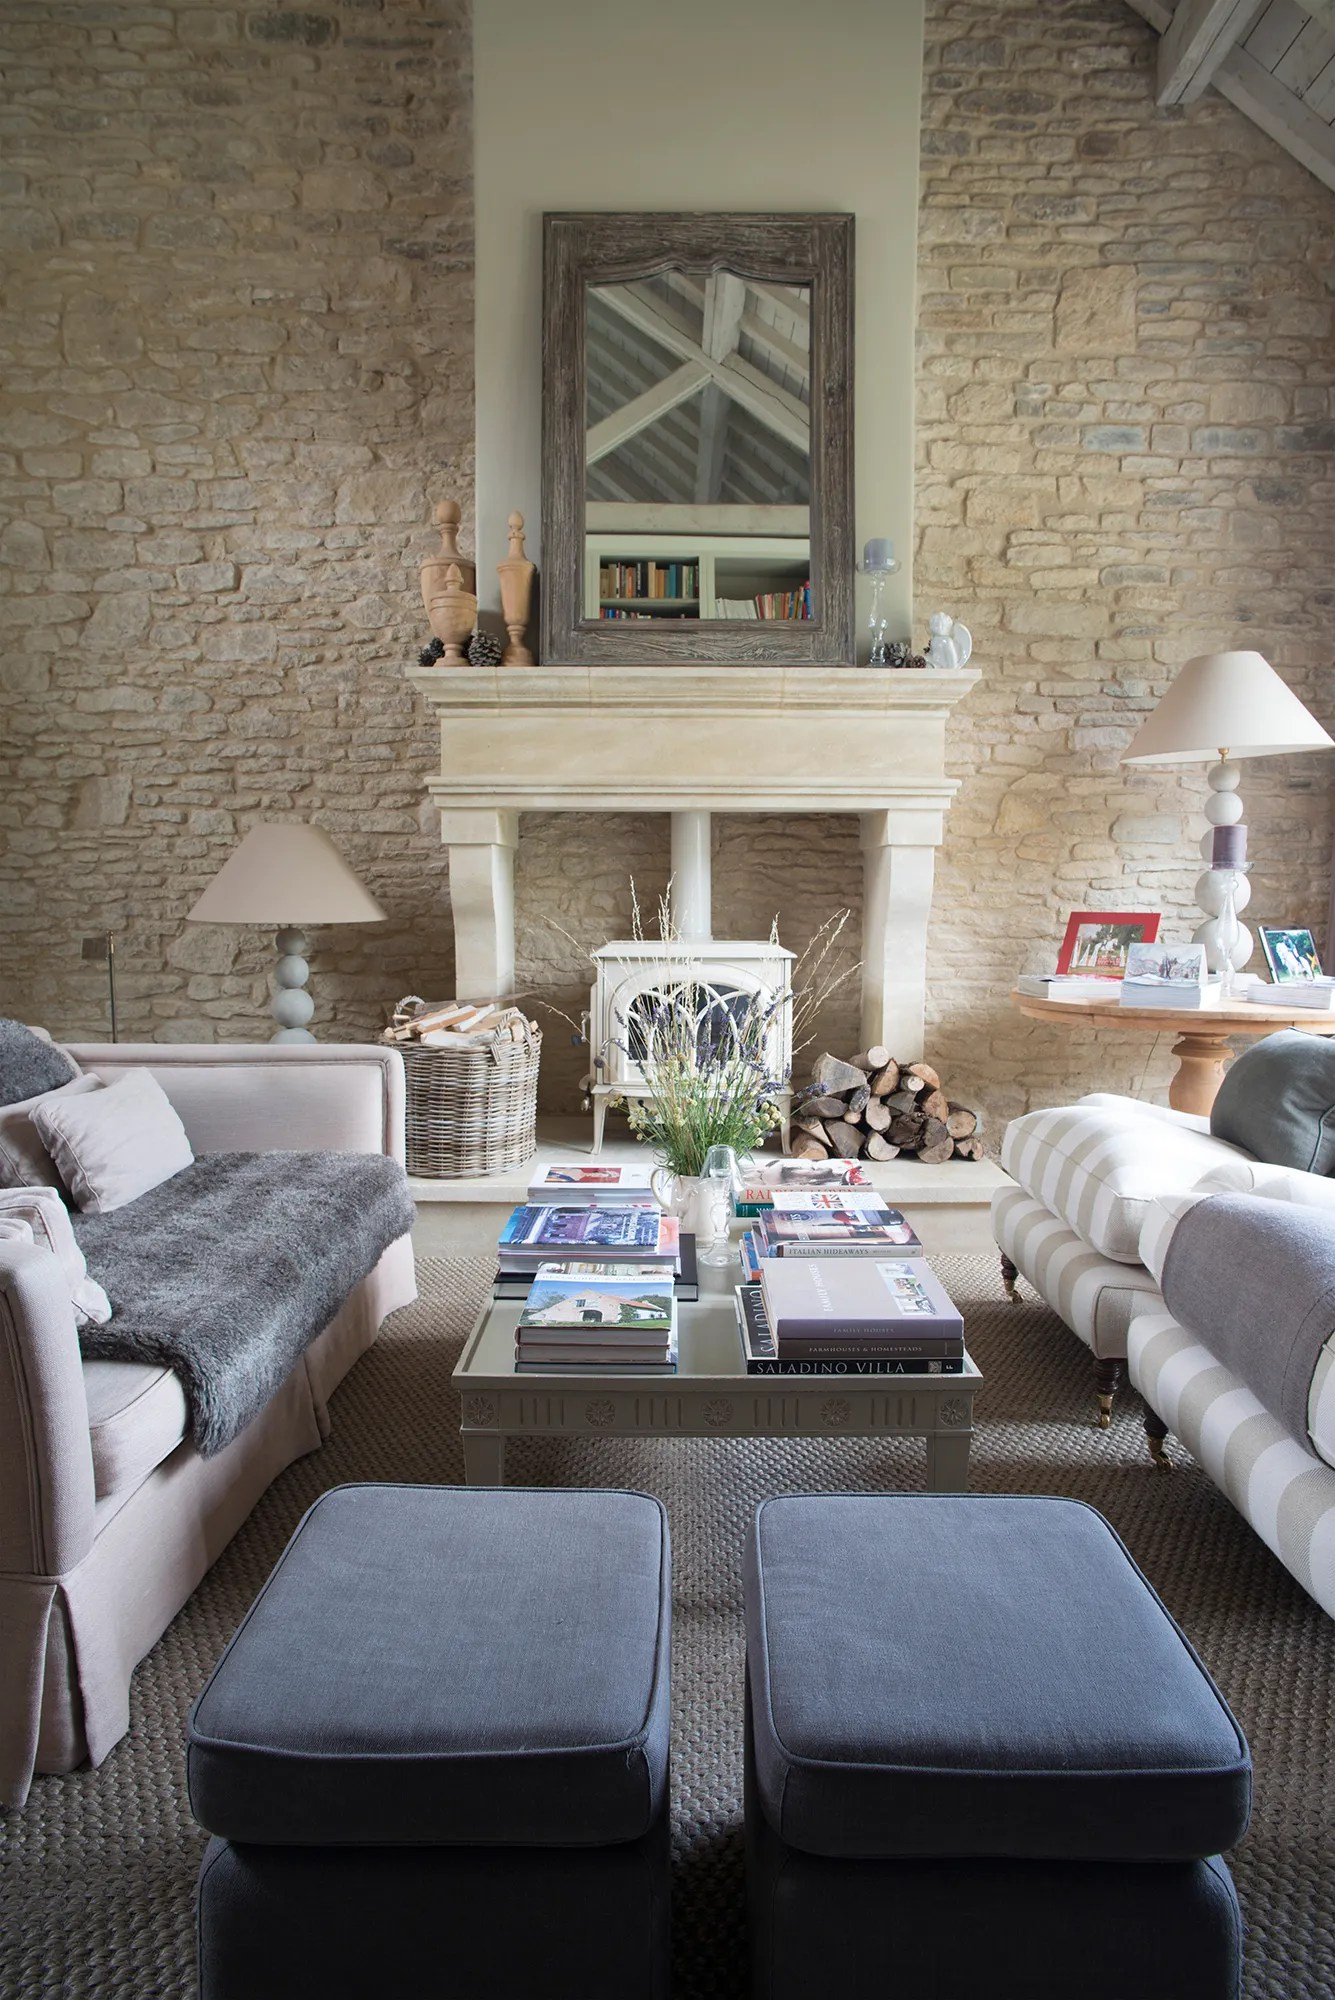 Cozy Country Cottage Style England S Top Designers On How To Get The Look Vogue